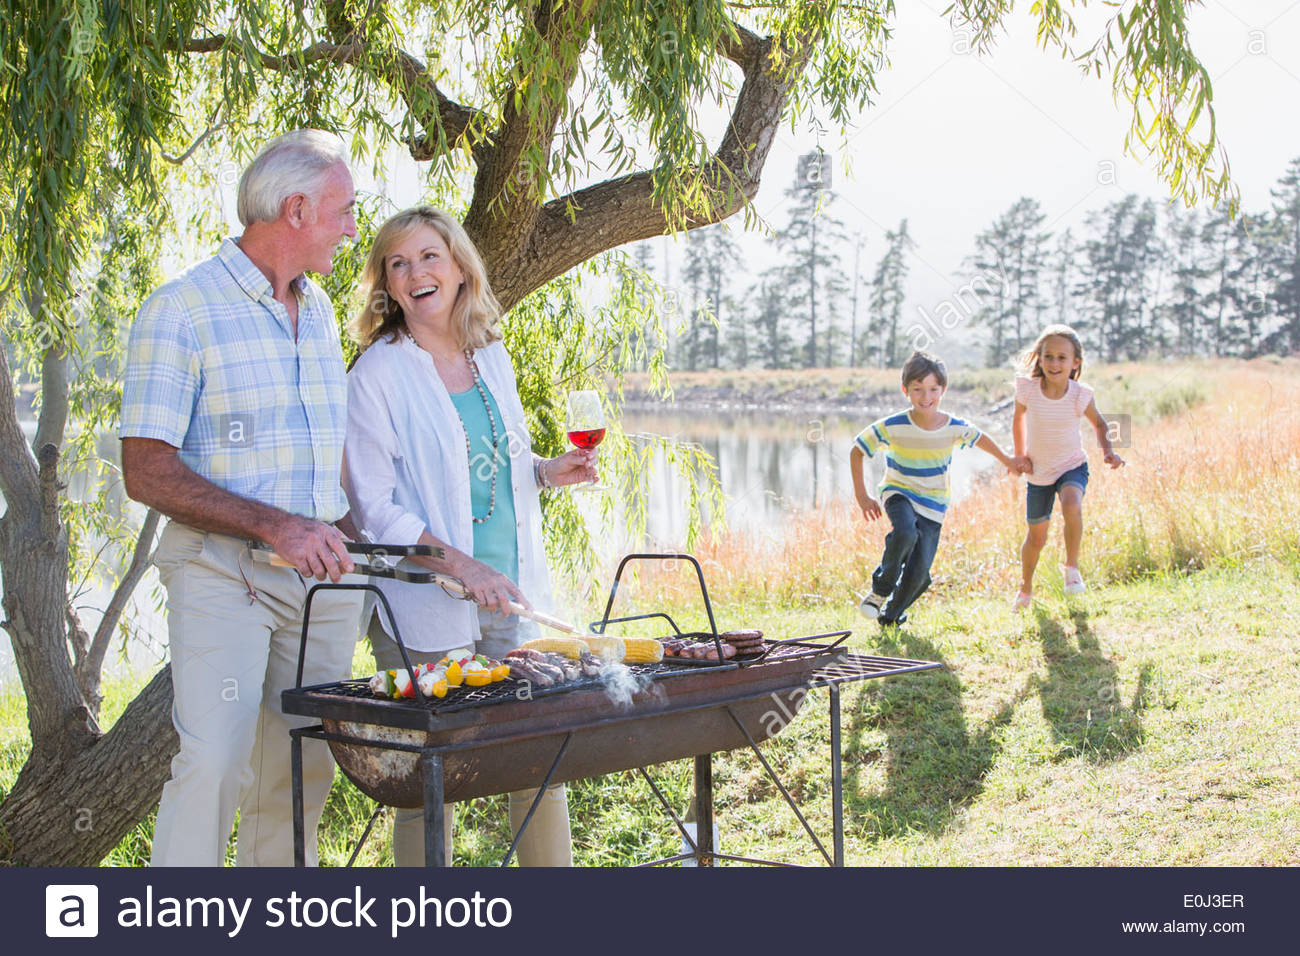 Grandparents Serving Grandchildren At Family Barbeque - Stock Image